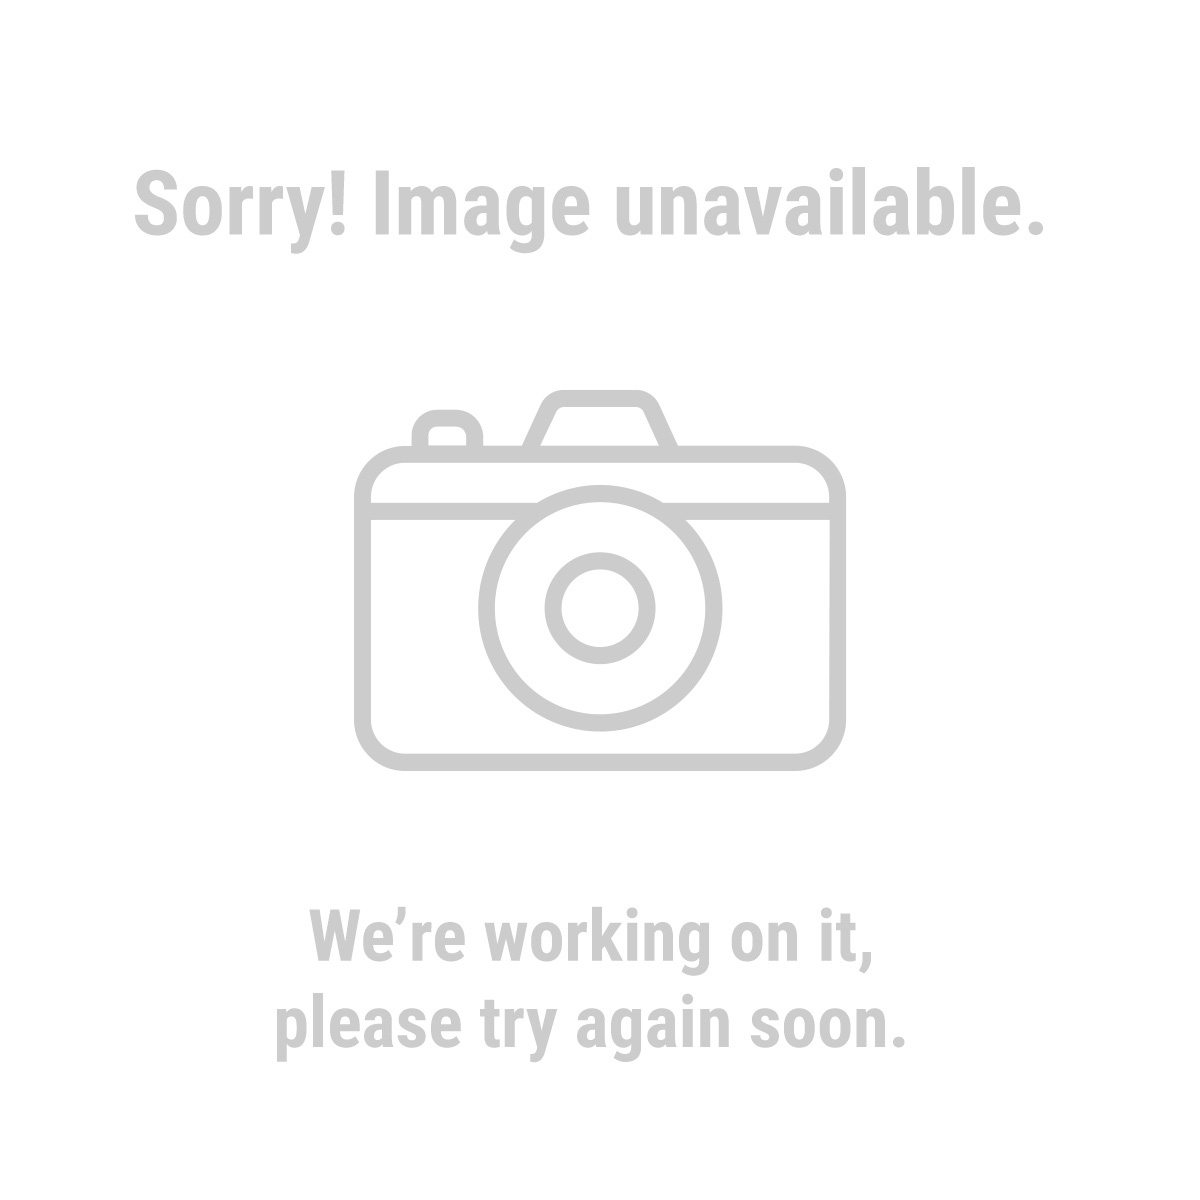 HFT 93670 50 Ft. 10 Gauge Triple Tap Extension Cord